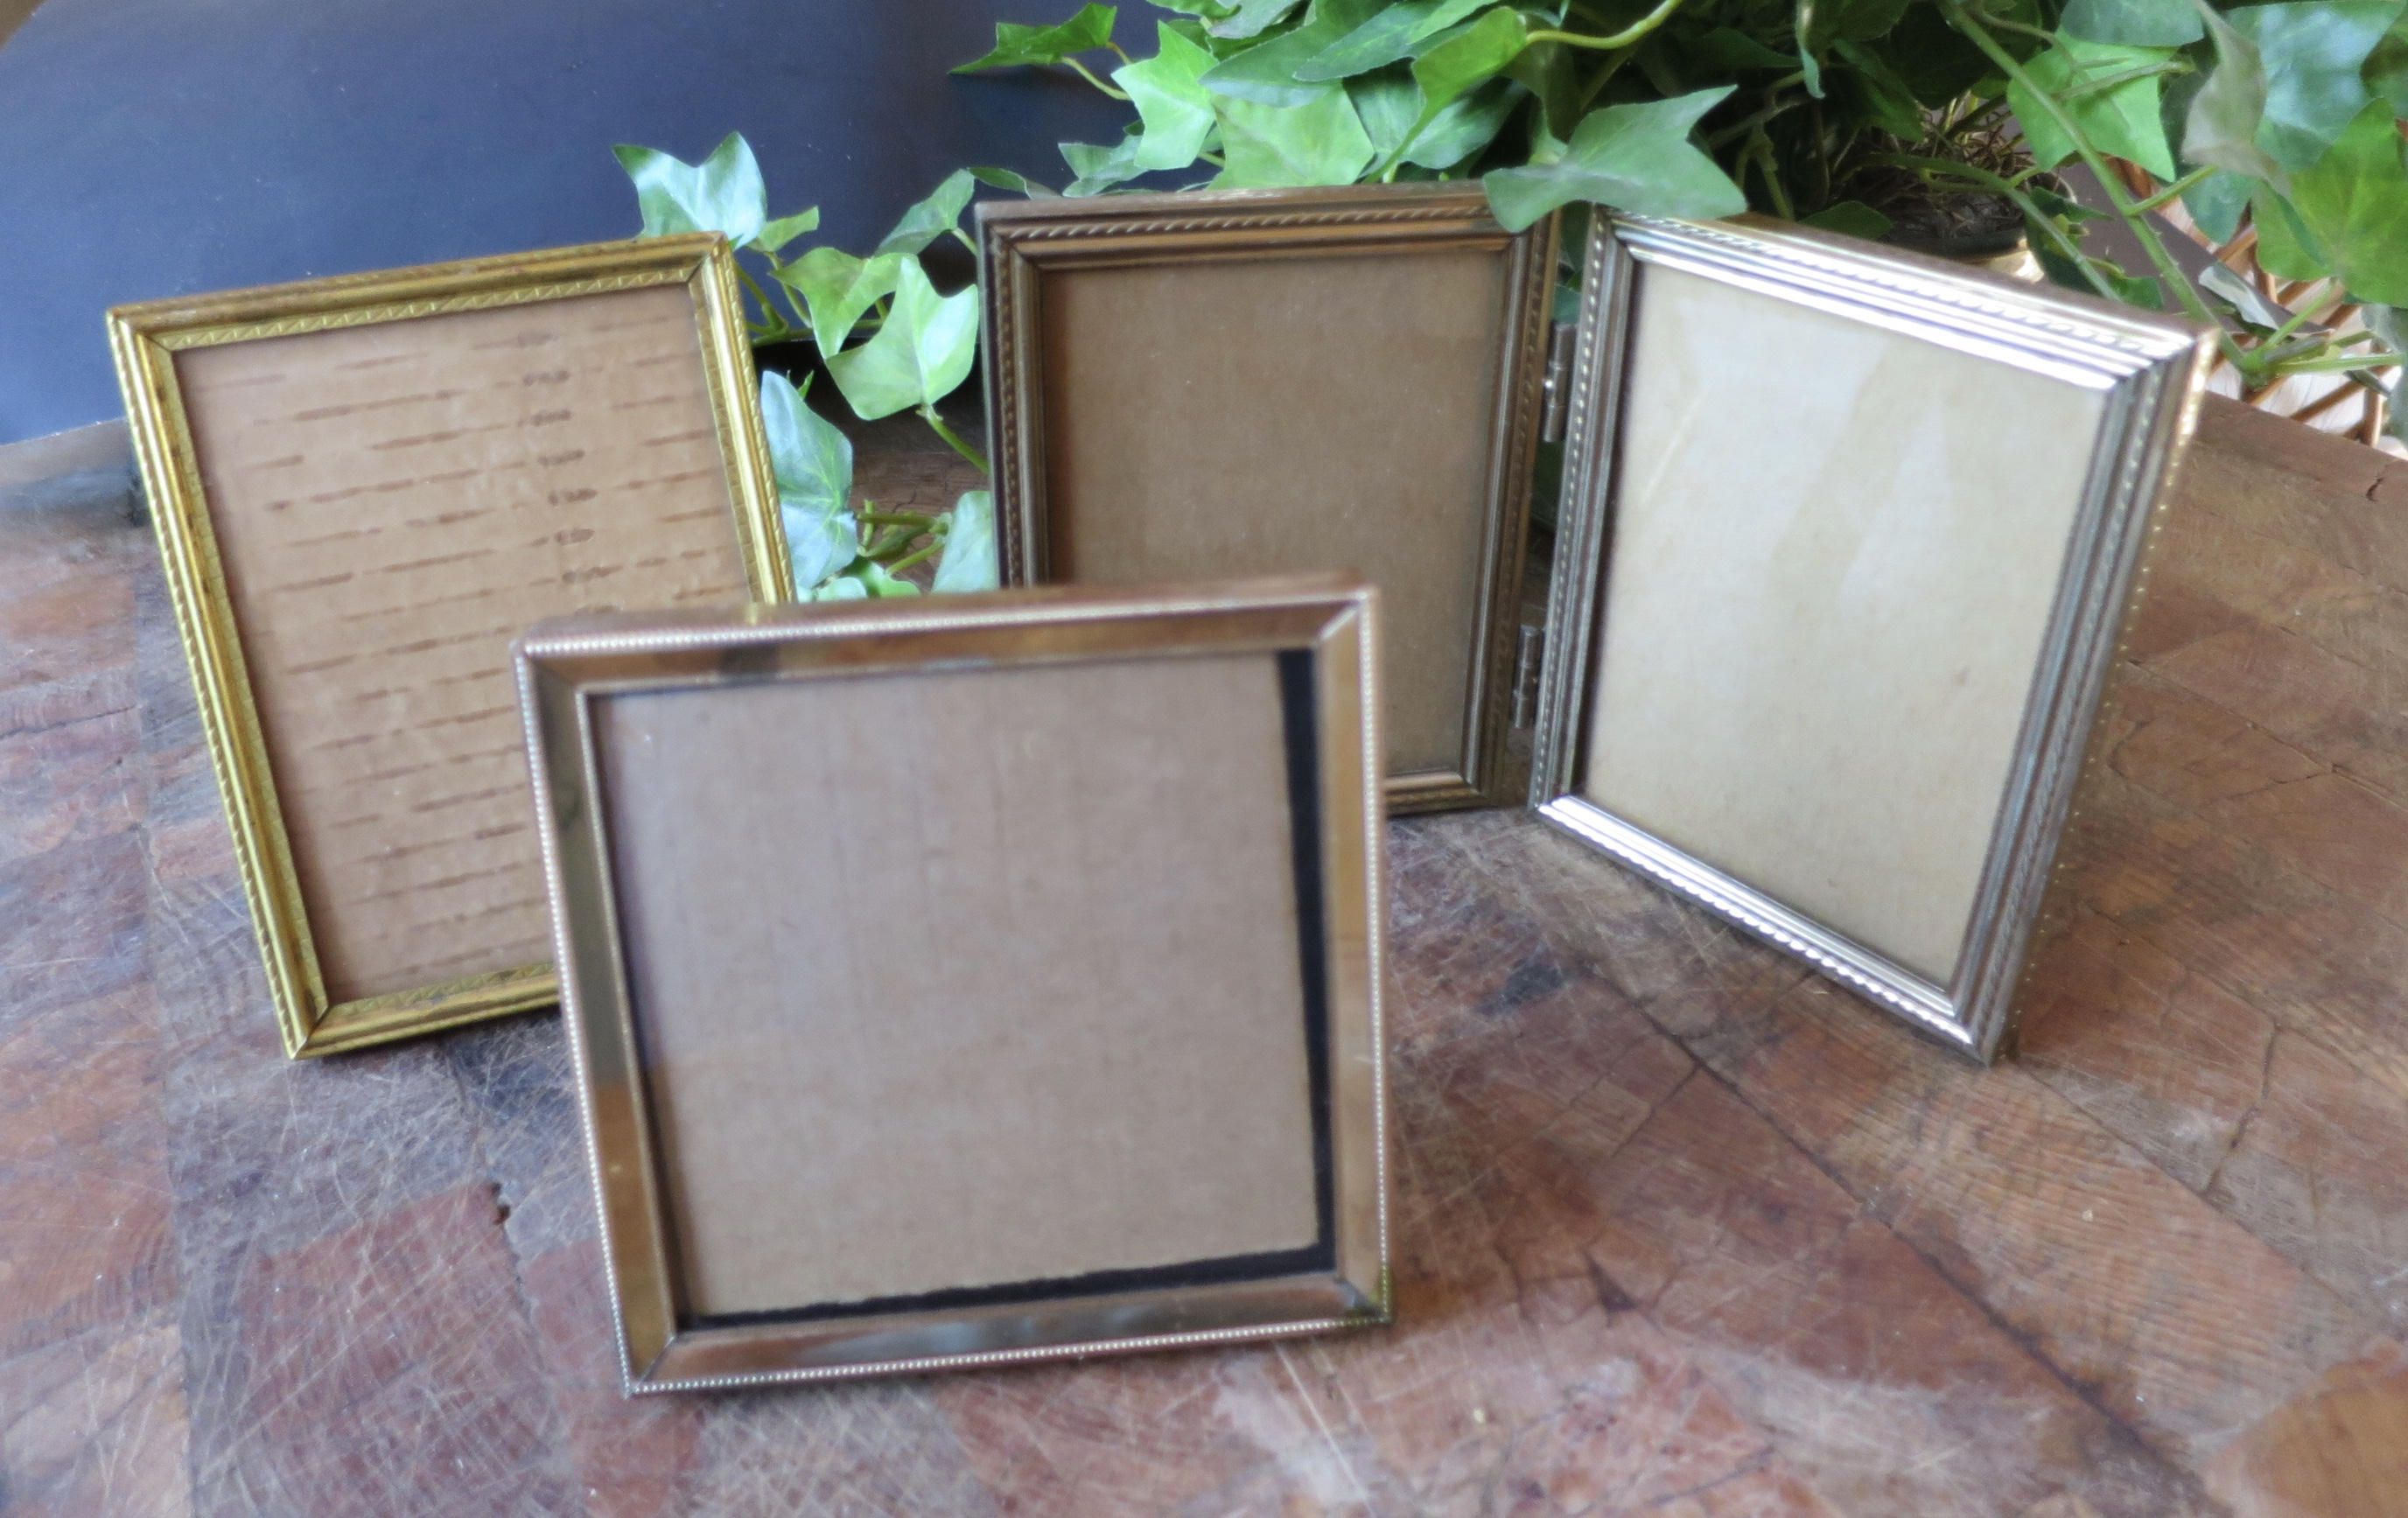 Vintage 3 Metal Photo Frames 3 X 4 3 X3 Inch Photos Gold Finish Hollywood Regency Frame Group Desk Top Tablet Metal Photo Frames French Home Decor Home Decor